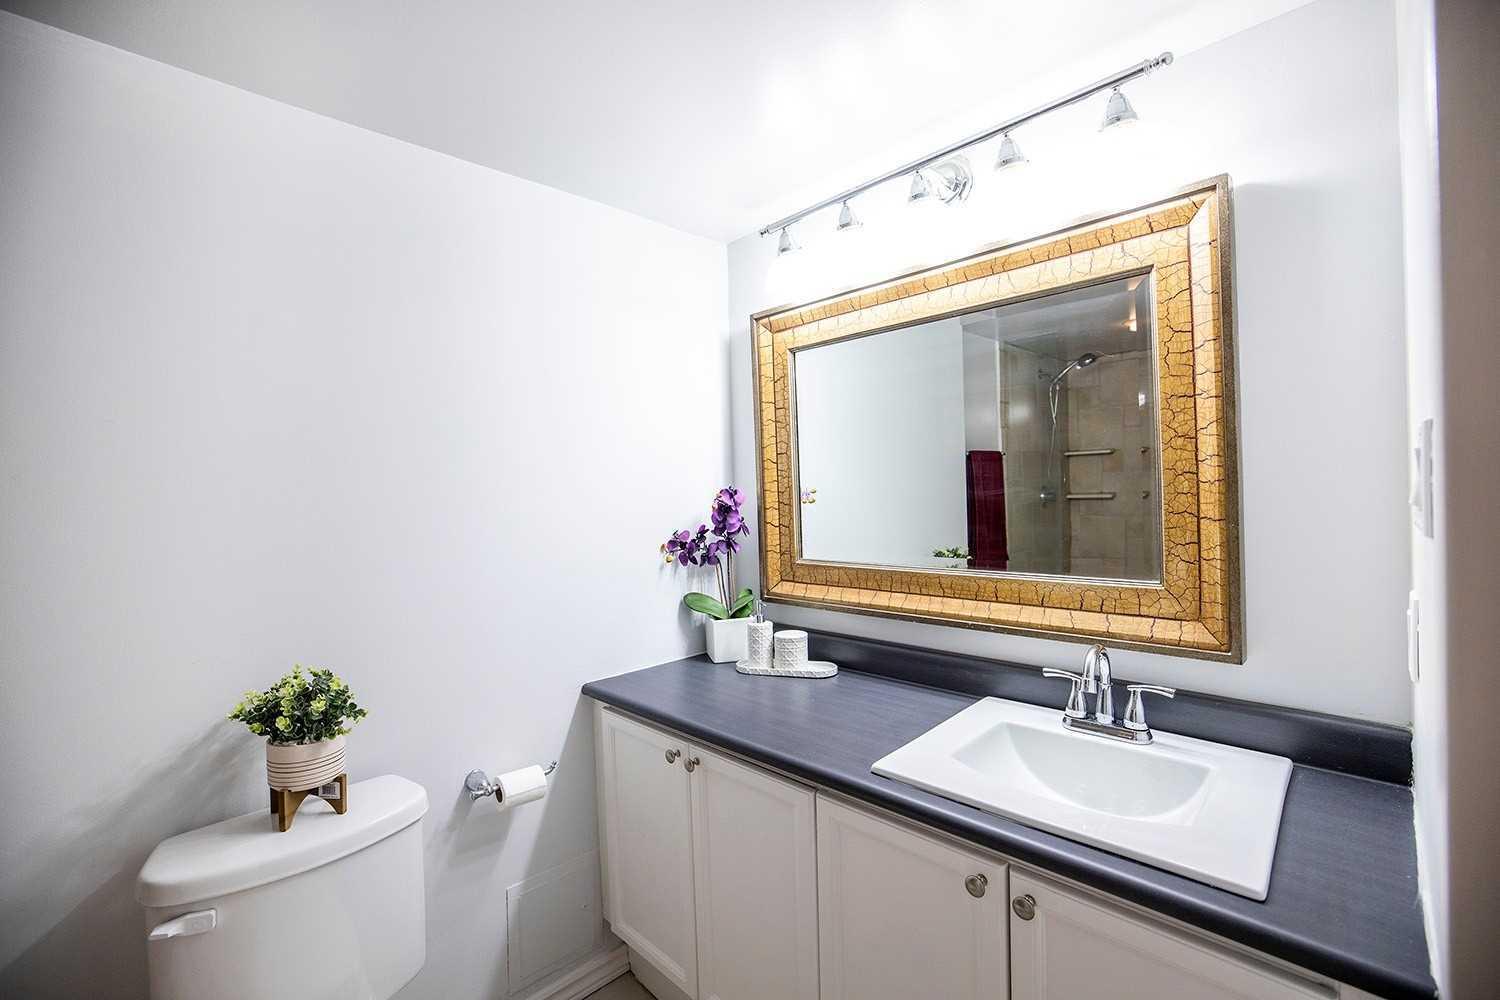 Image 6 of 20 showing inside of 2 Bedroom Condo Apt 2-Storey for Sale at 25 Cumberland Lane Unit# 112, Ajax L1S7K1